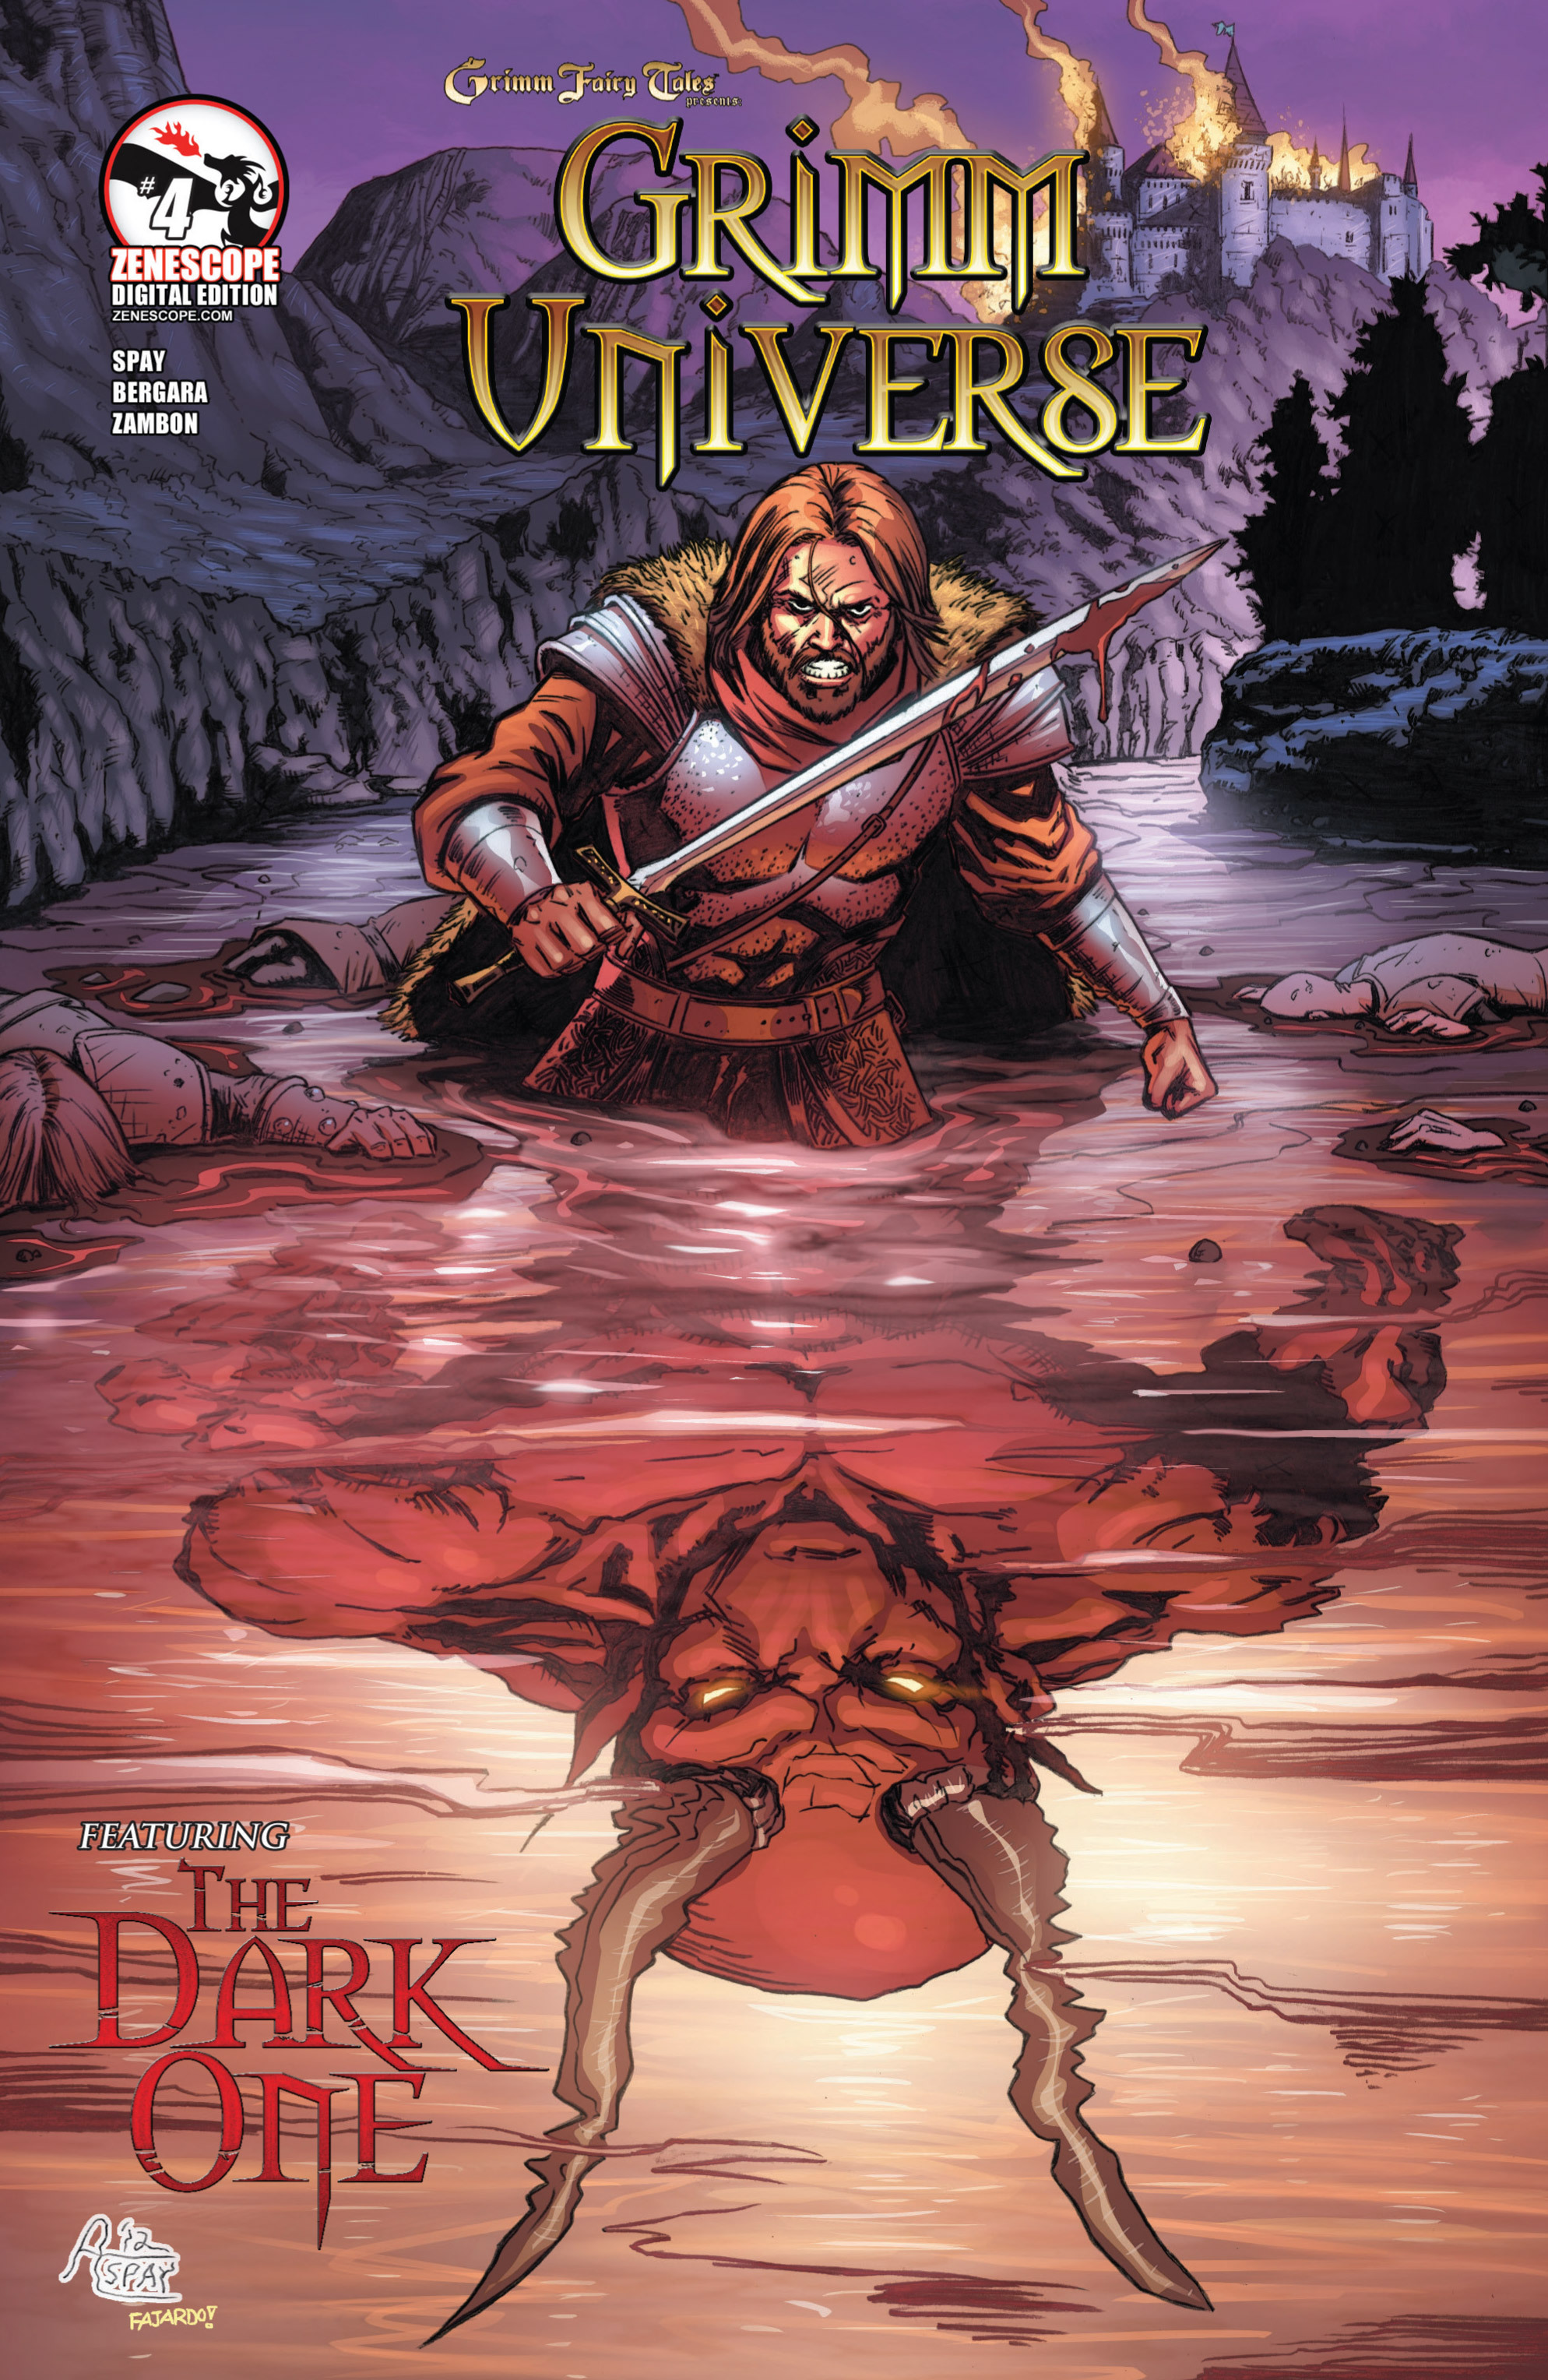 Read online Grimm Fairy Tales presents Grimm Universe comic -  Issue # TPB - 128